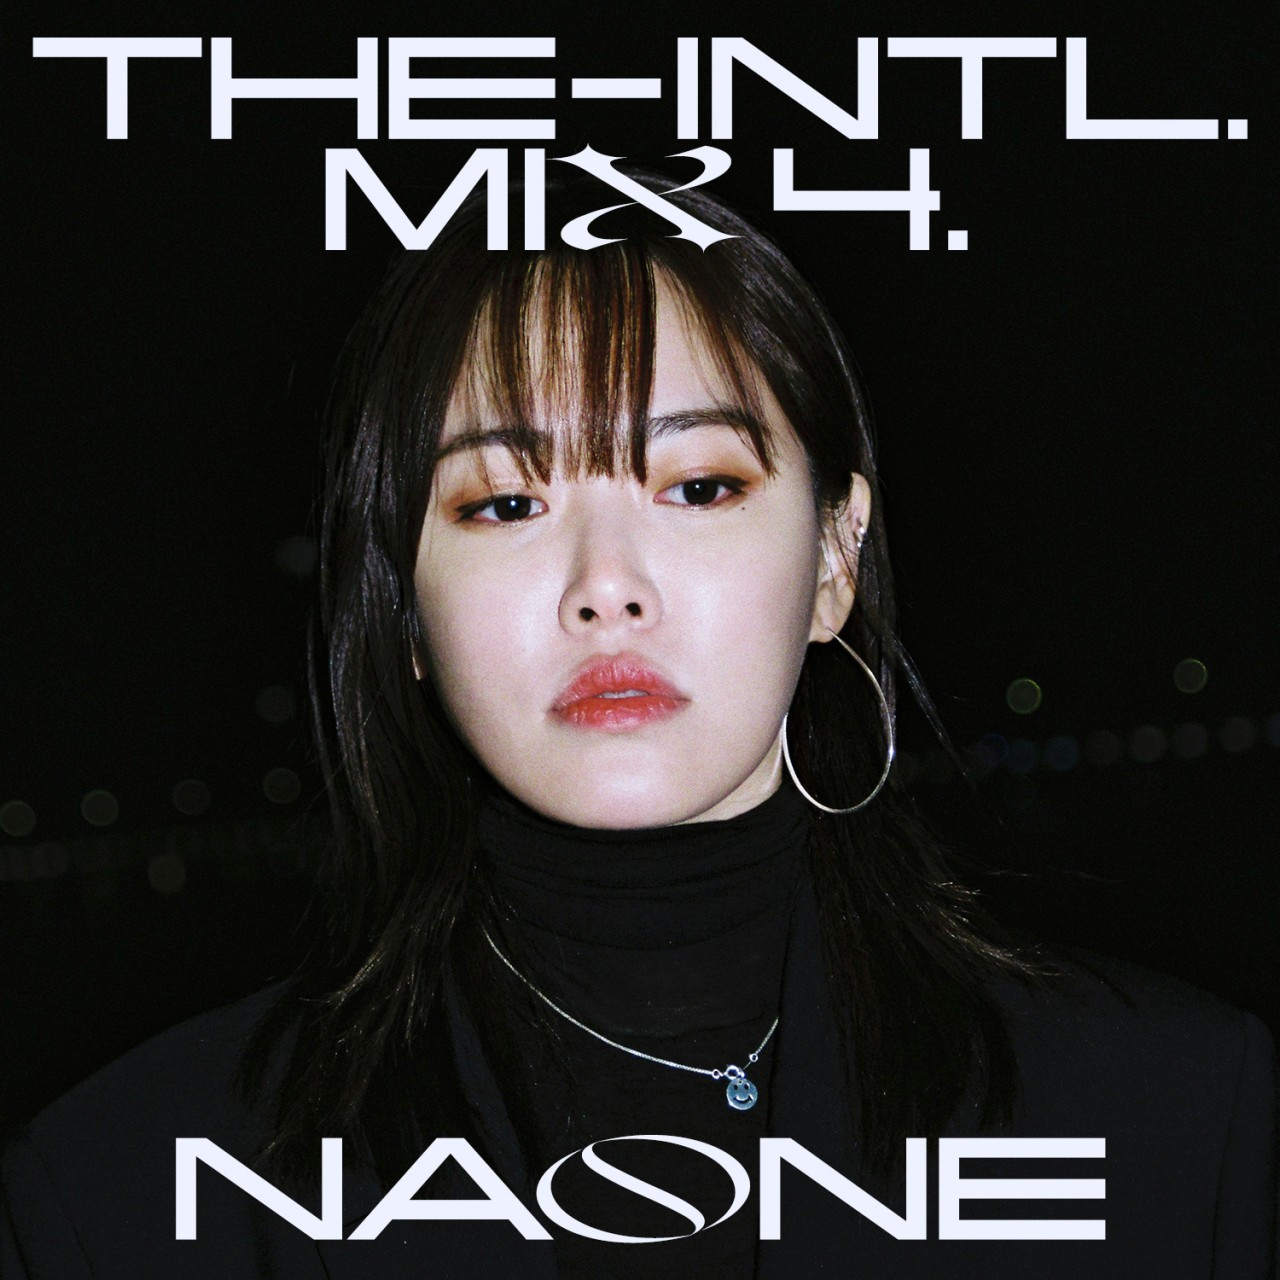 THE-INTL.MIX 4. Naone